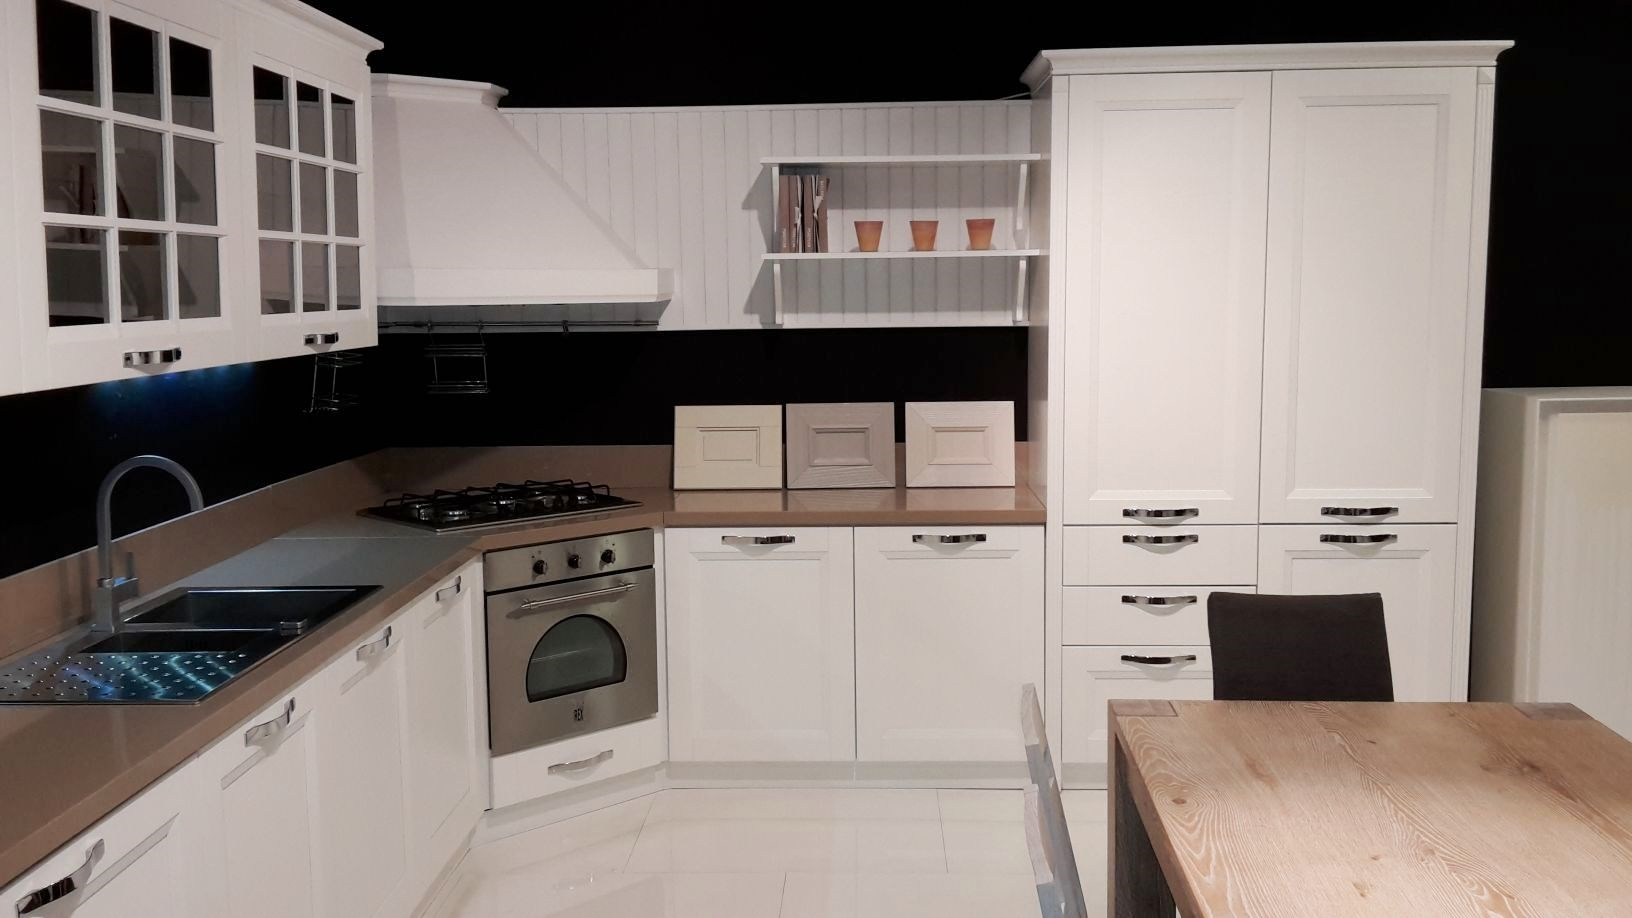 Cucina beverly biancospino by stosa cucine a prezzi scontati - Cucina beverly stosa prezzi ...